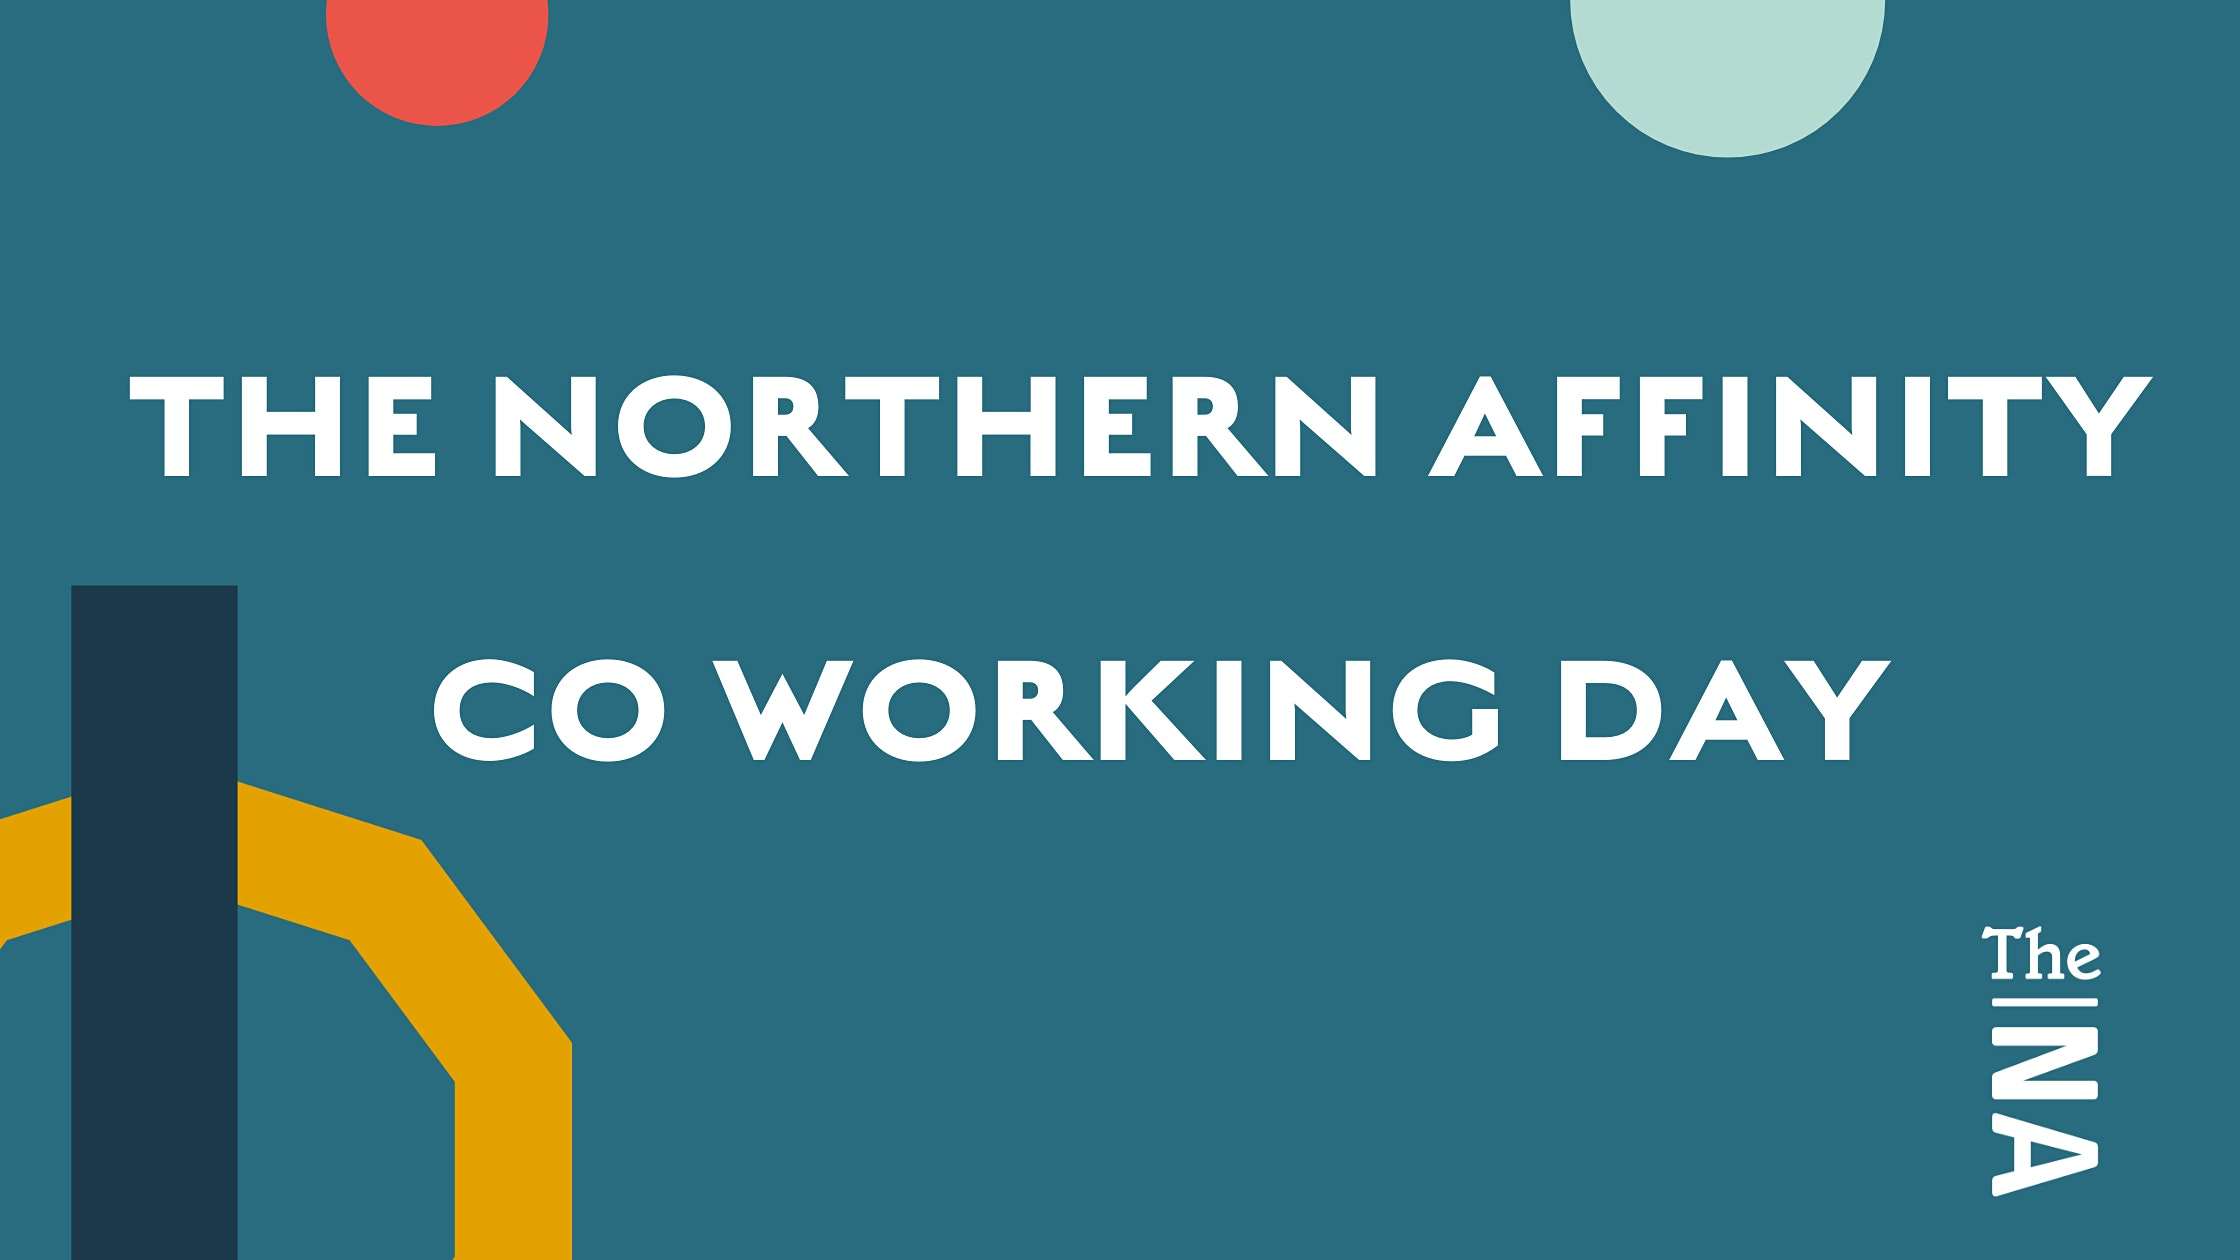 The Northern Affinity Co Working Day @ 111 Piccadily Manchester